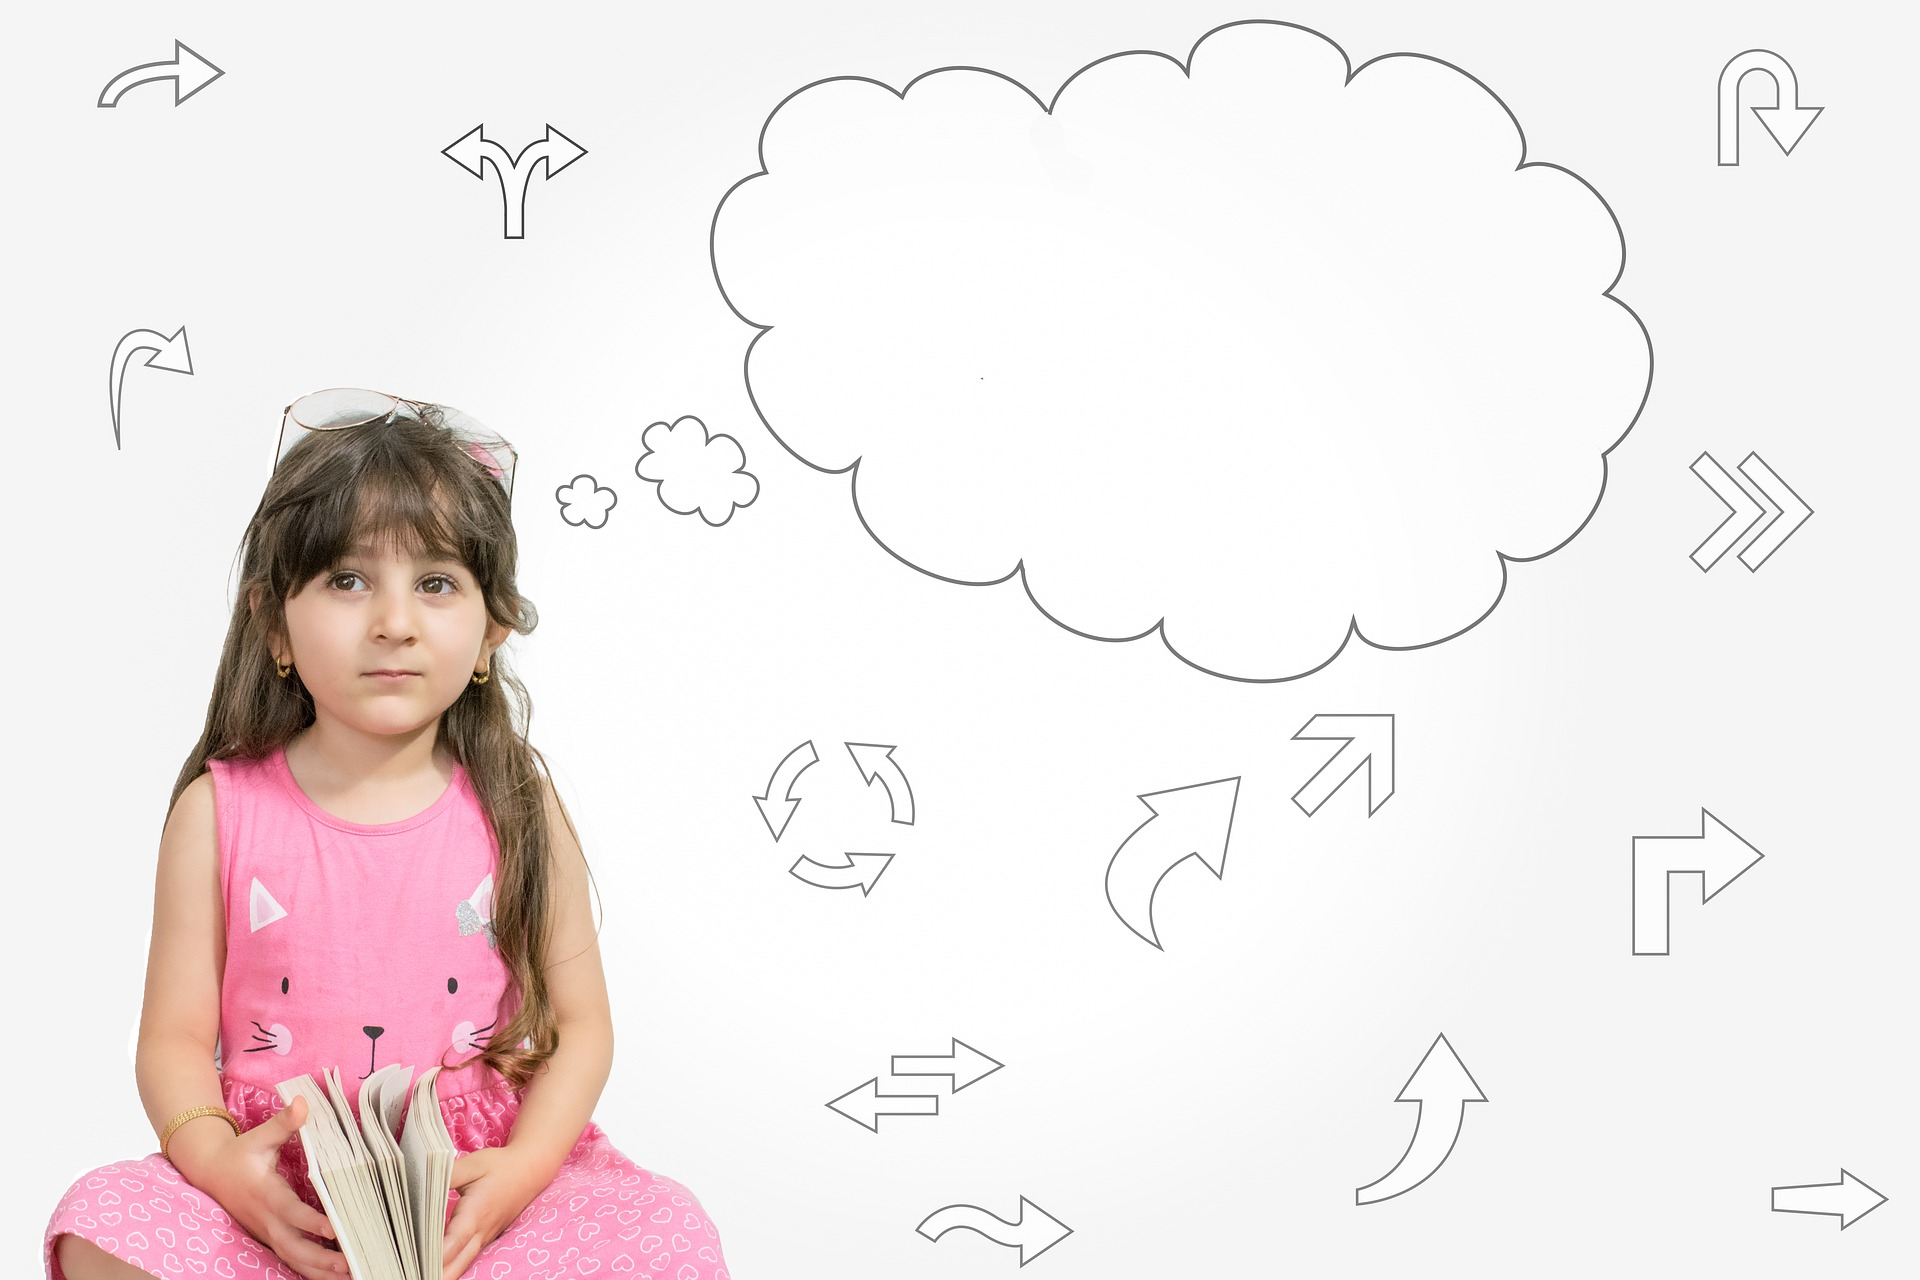 Delays, Doubts, & Doing Something – Your Child's Development